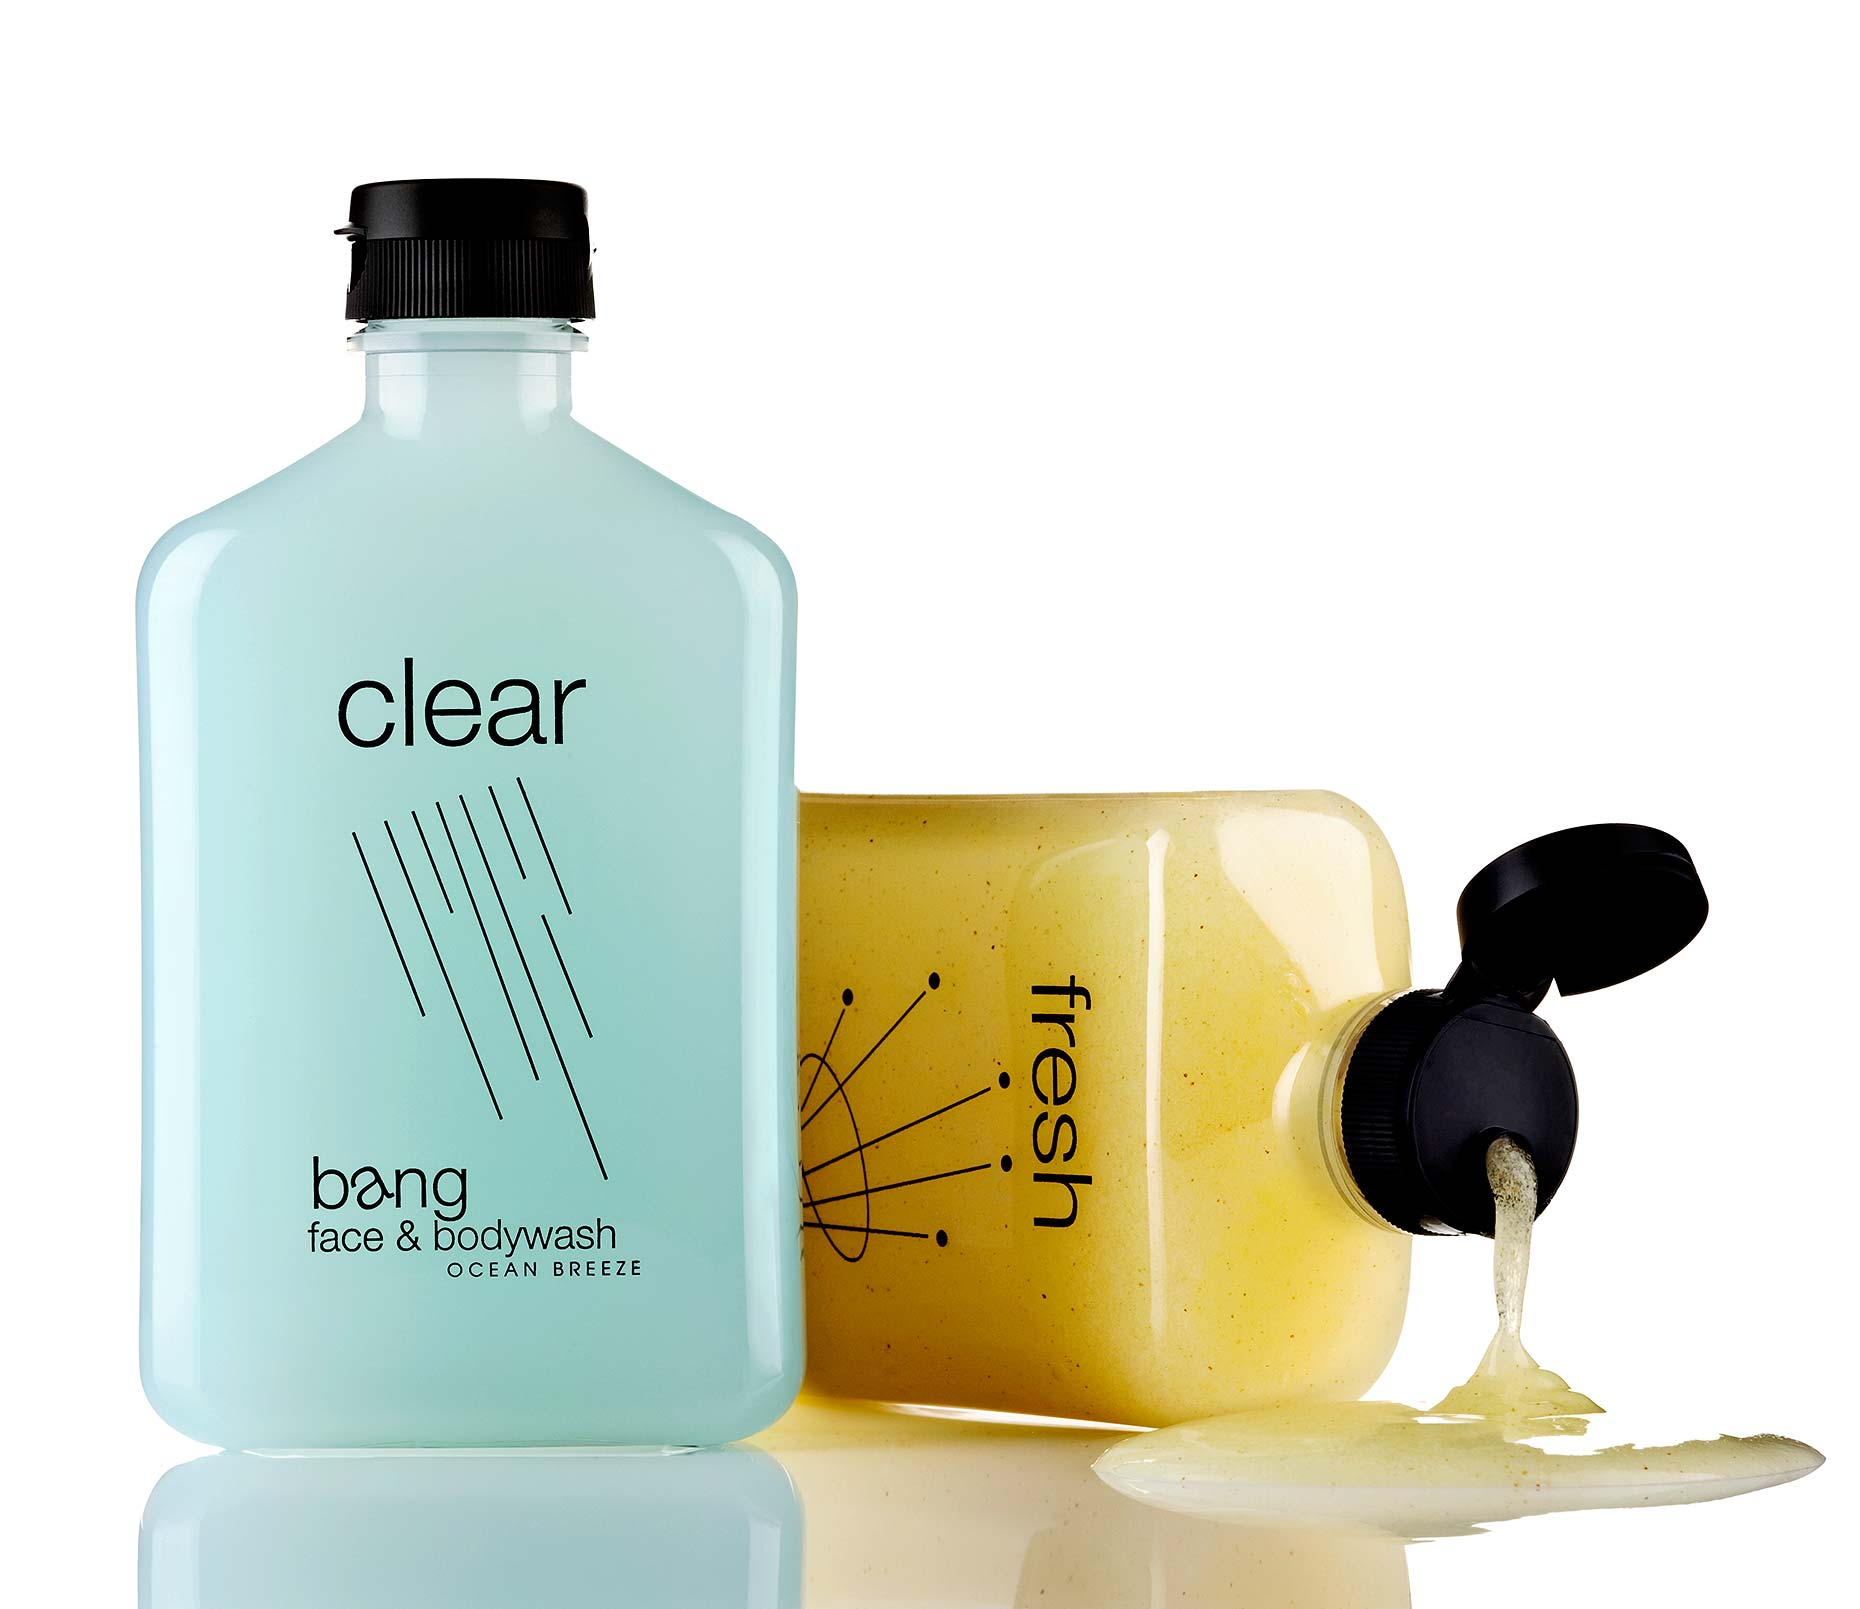 005_BANG-Clear-and-Fresh45222